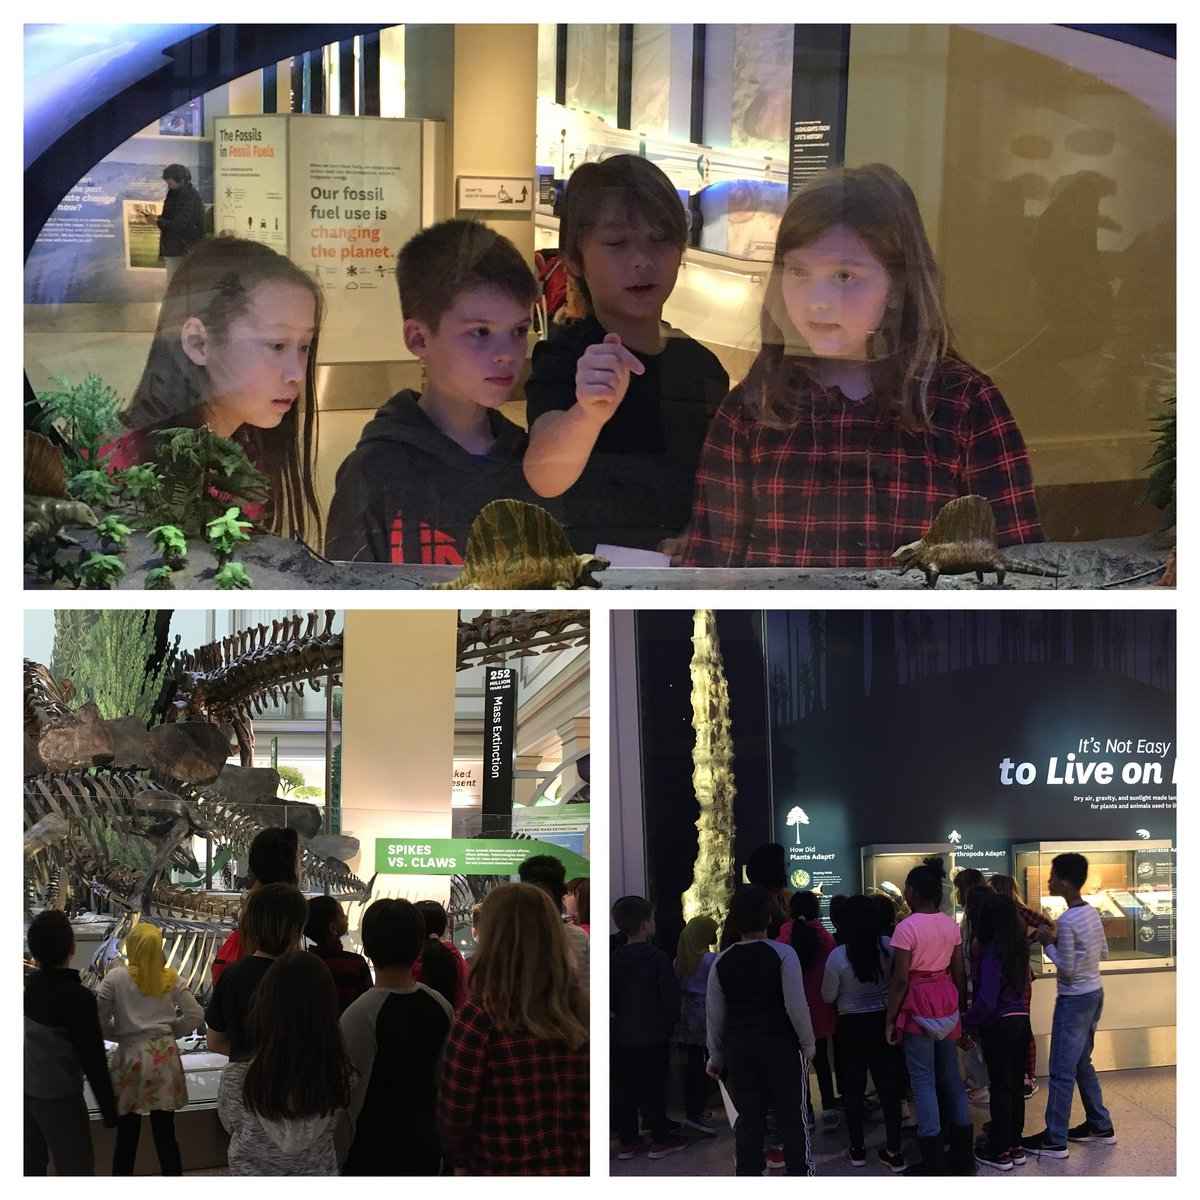 3rd gr Ss ventured out of the classroom to learn about early life forms on earth. <a target='_blank' href='http://twitter.com/APSscience'>@APSscience</a> <a target='_blank' href='http://twitter.com/CampbellAPS'>@CampbellAPS</a> <a target='_blank' href='http://twitter.com/nawazishtareen'>@nawazishtareen</a> <a target='_blank' href='https://t.co/JBZ1skntfb'>https://t.co/JBZ1skntfb</a>